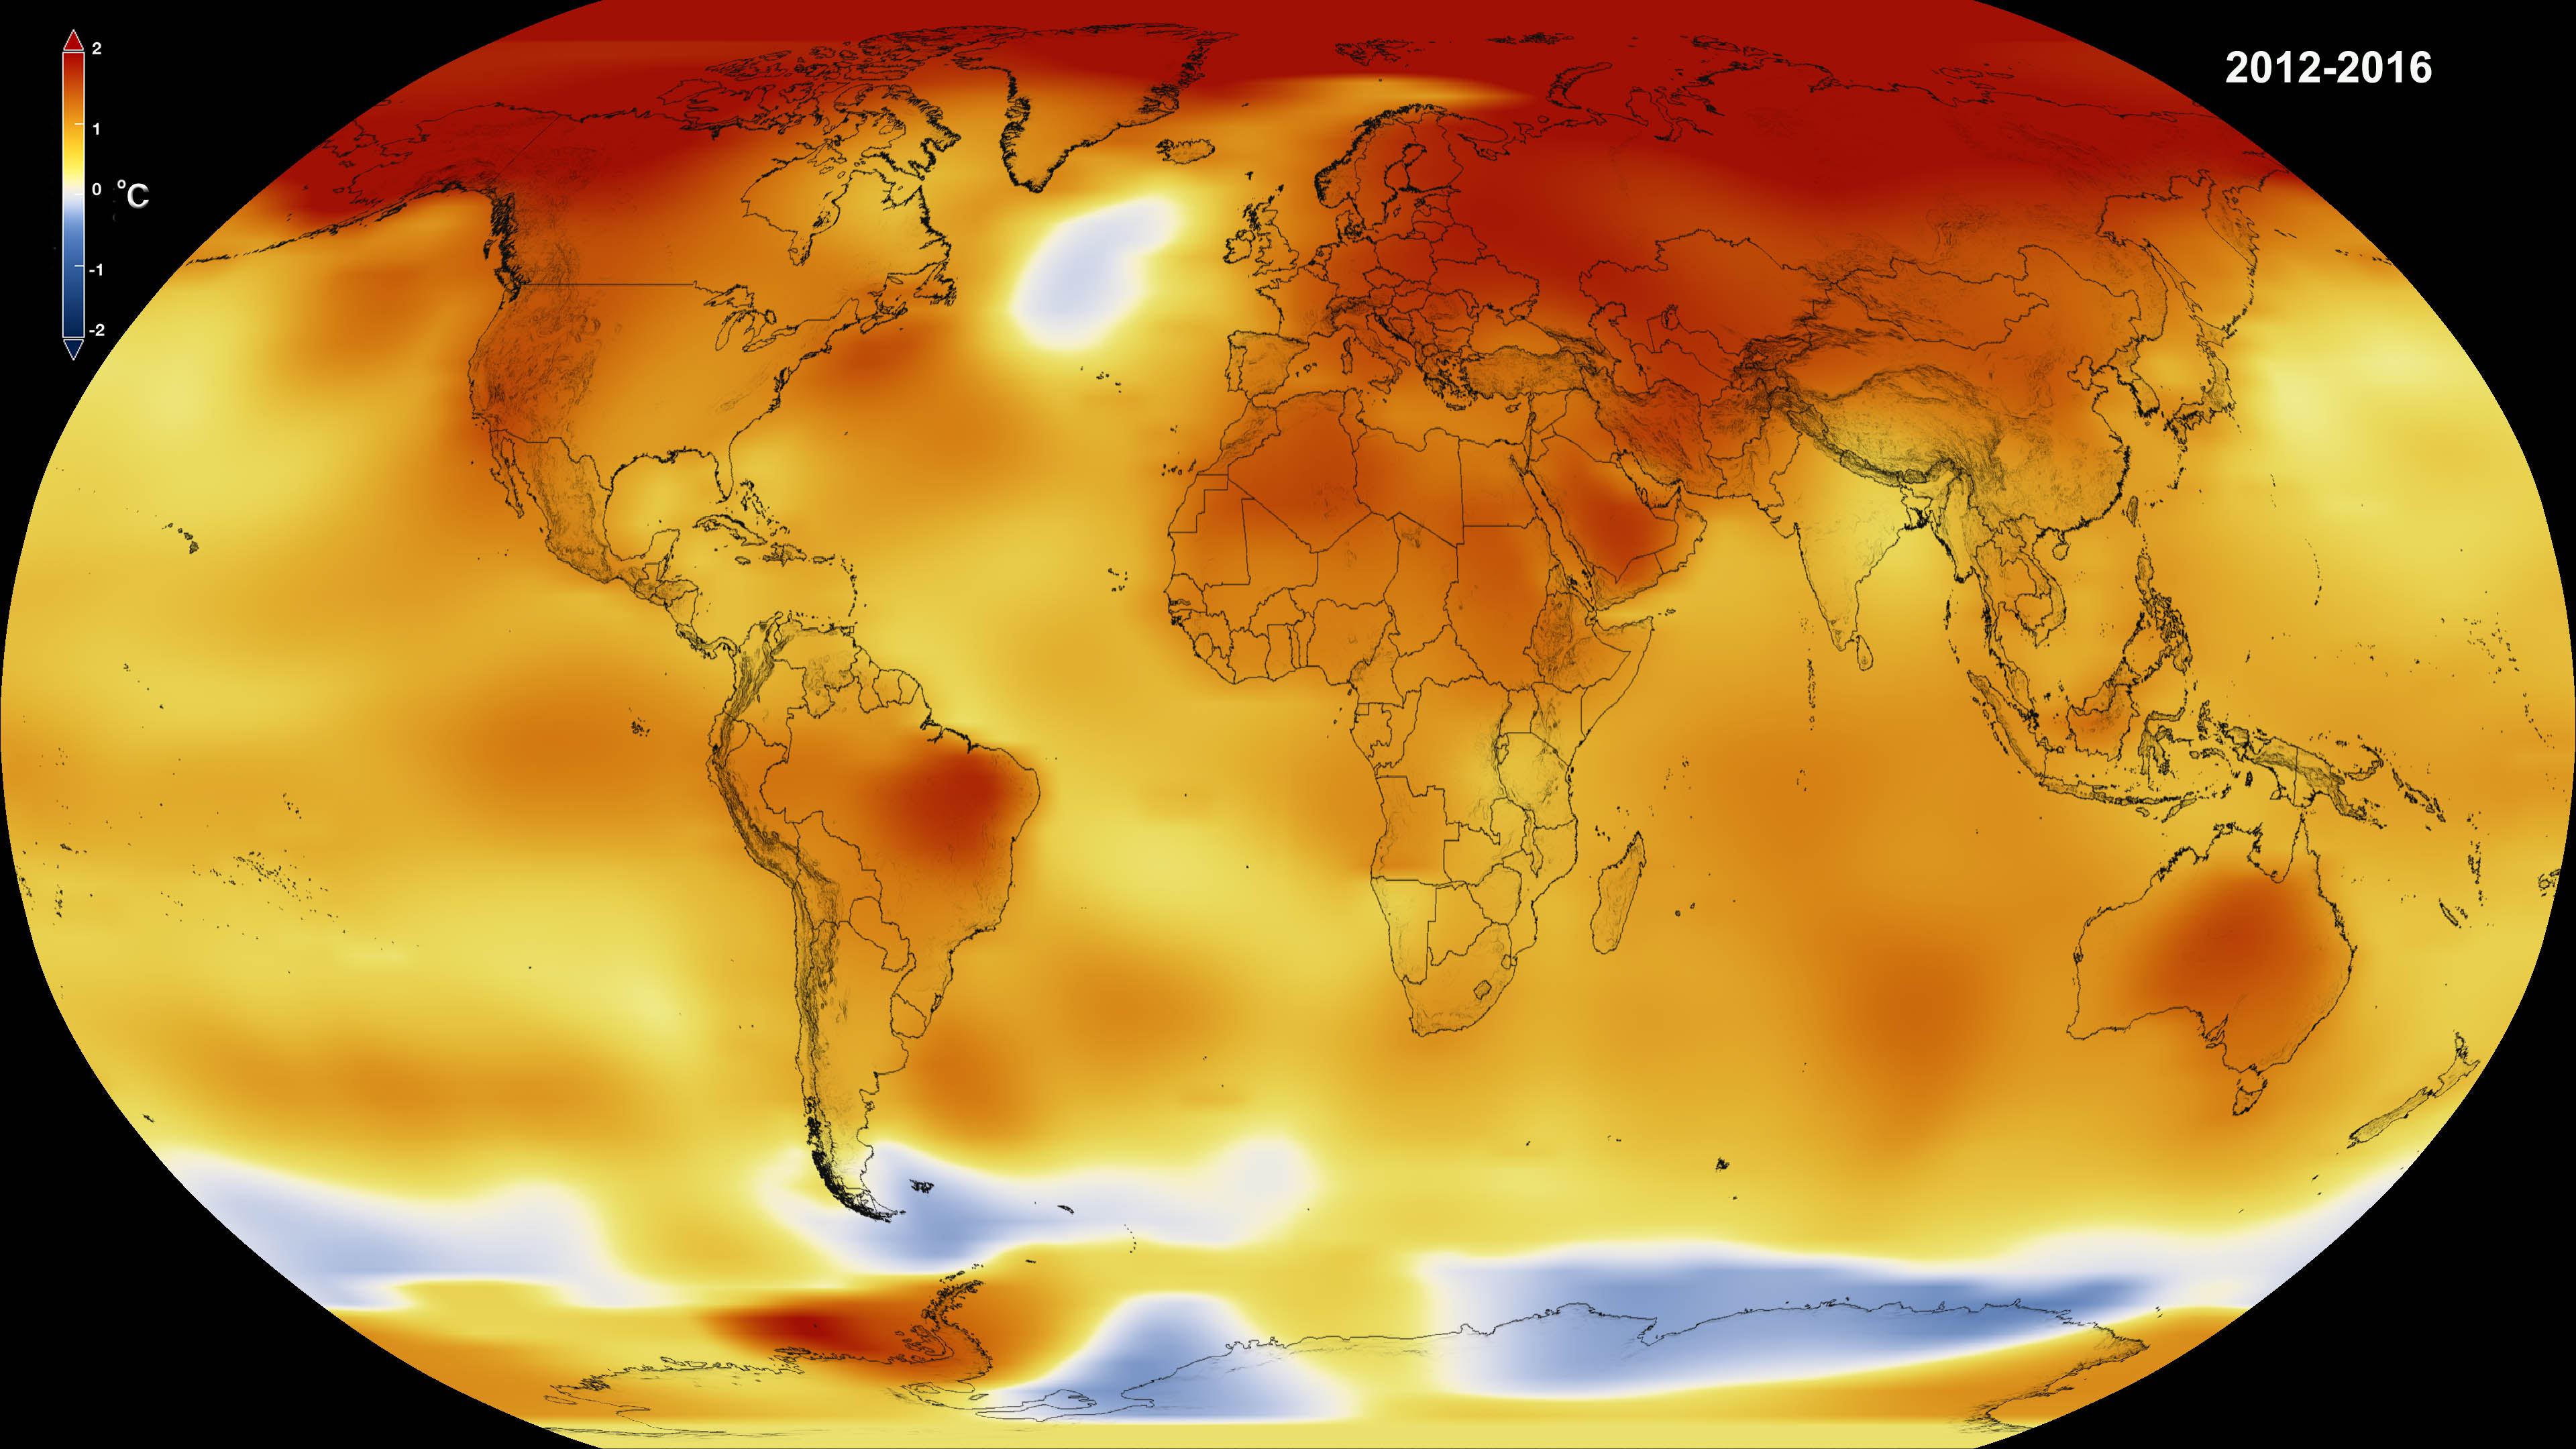 NASA, NOAA Data Show 2016 Warmest Year on Record Globally | NASA